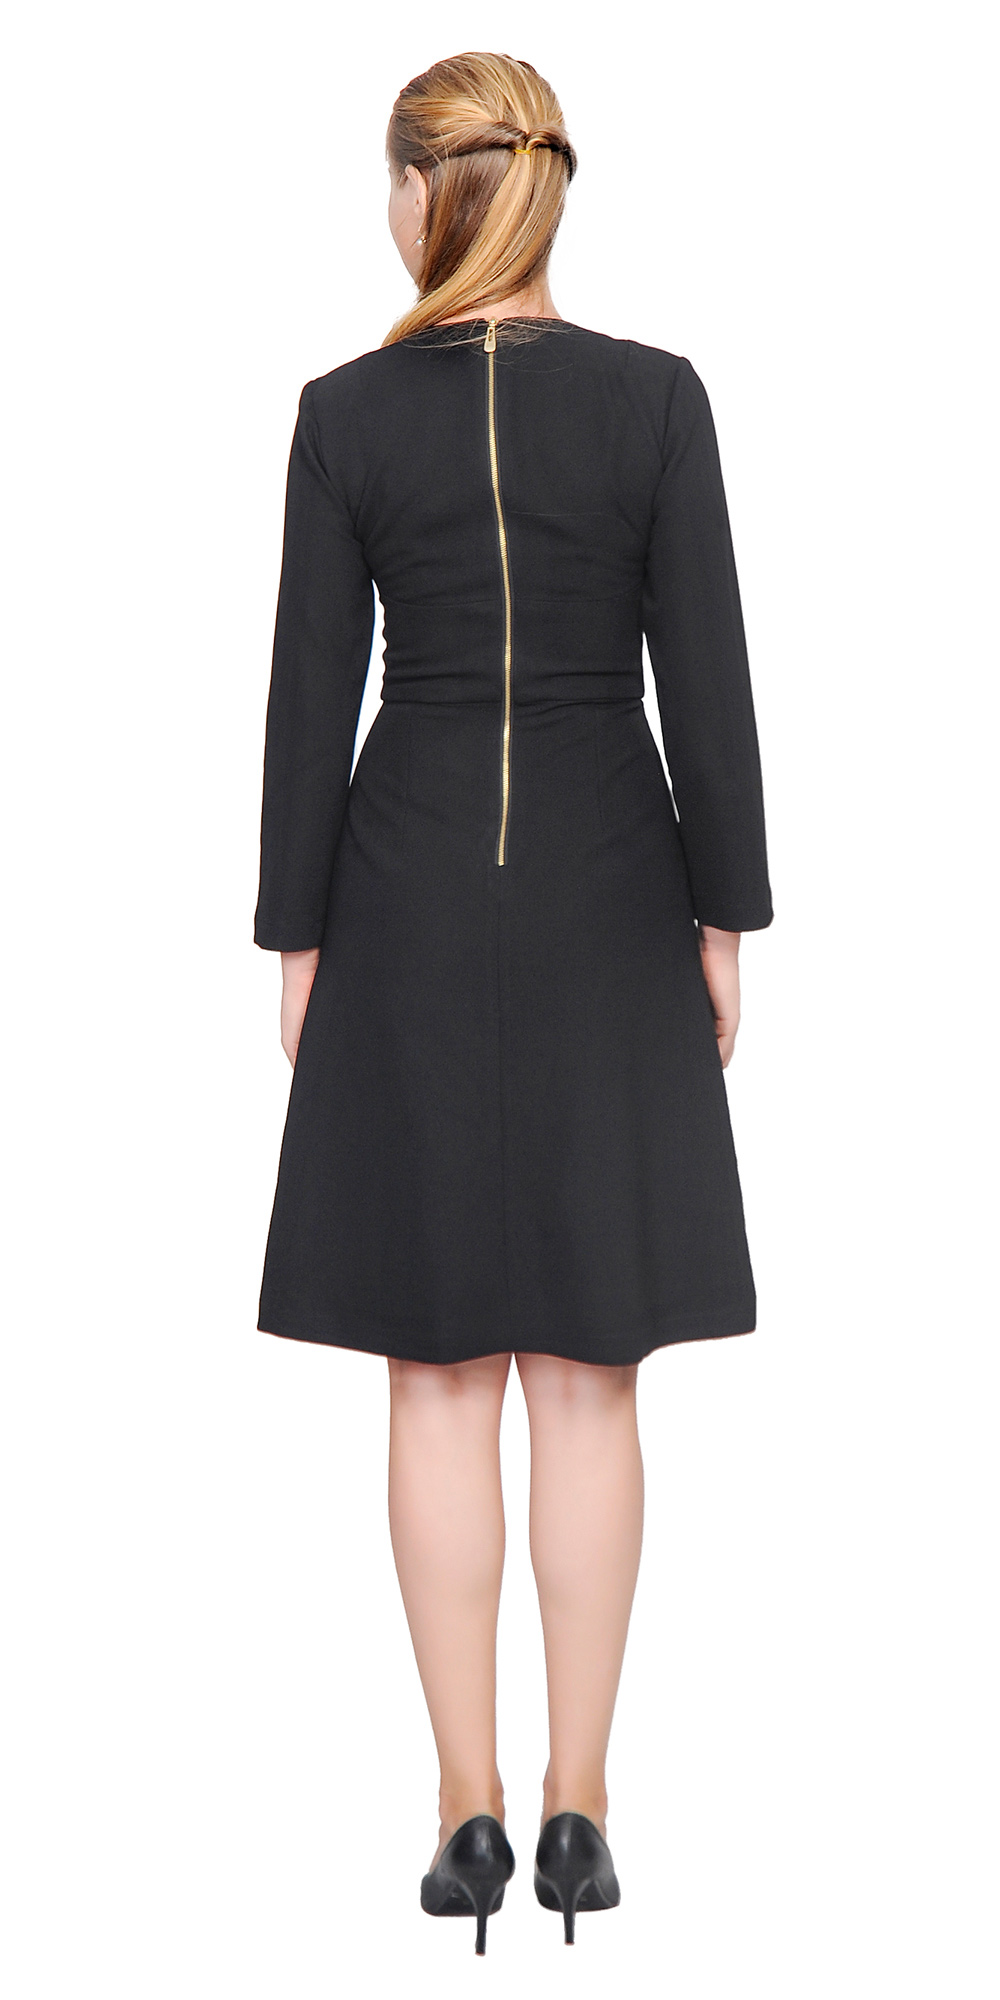 Shop our Collection of Women's Long Sleeve Dresses at gothicphotos.ga for the Latest Designer Brands & Styles. FREE SHIPPING AVAILABLE! Wear to Work () Tommy Hilfiger Long-Sleeve Lace-Up Dress, Created for Macy's.